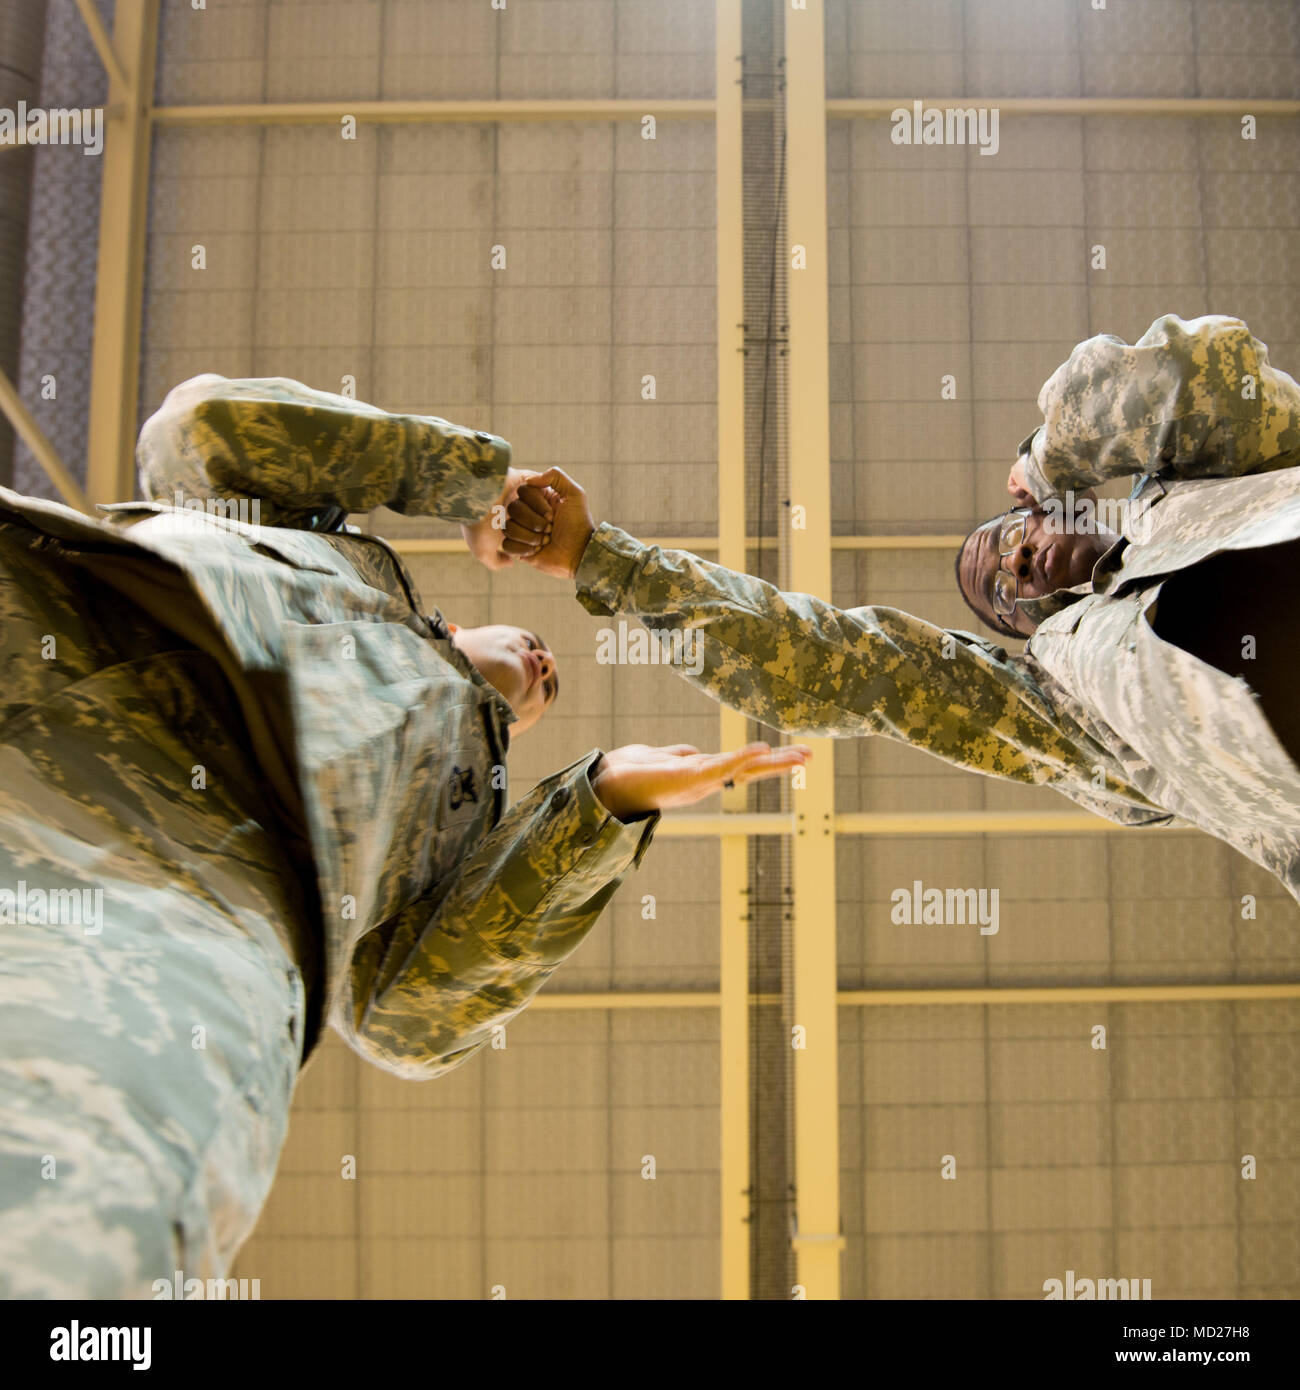 U.S. Air Force Staff Sgt. Mario Huerta, assigned to the SACEUR Security Detachment, describes the jab that U.S. Army Terrance Simmons, with the Northern Law Center, 21st Theater Sustainment Command throws, for a Joint Tactical Combatives Course, in Chièvres, Belgium, March 09, 2018. (U.S. Army photo by Visual Information Specialist Pierre-Etienne Courtejoie) - Stock Image